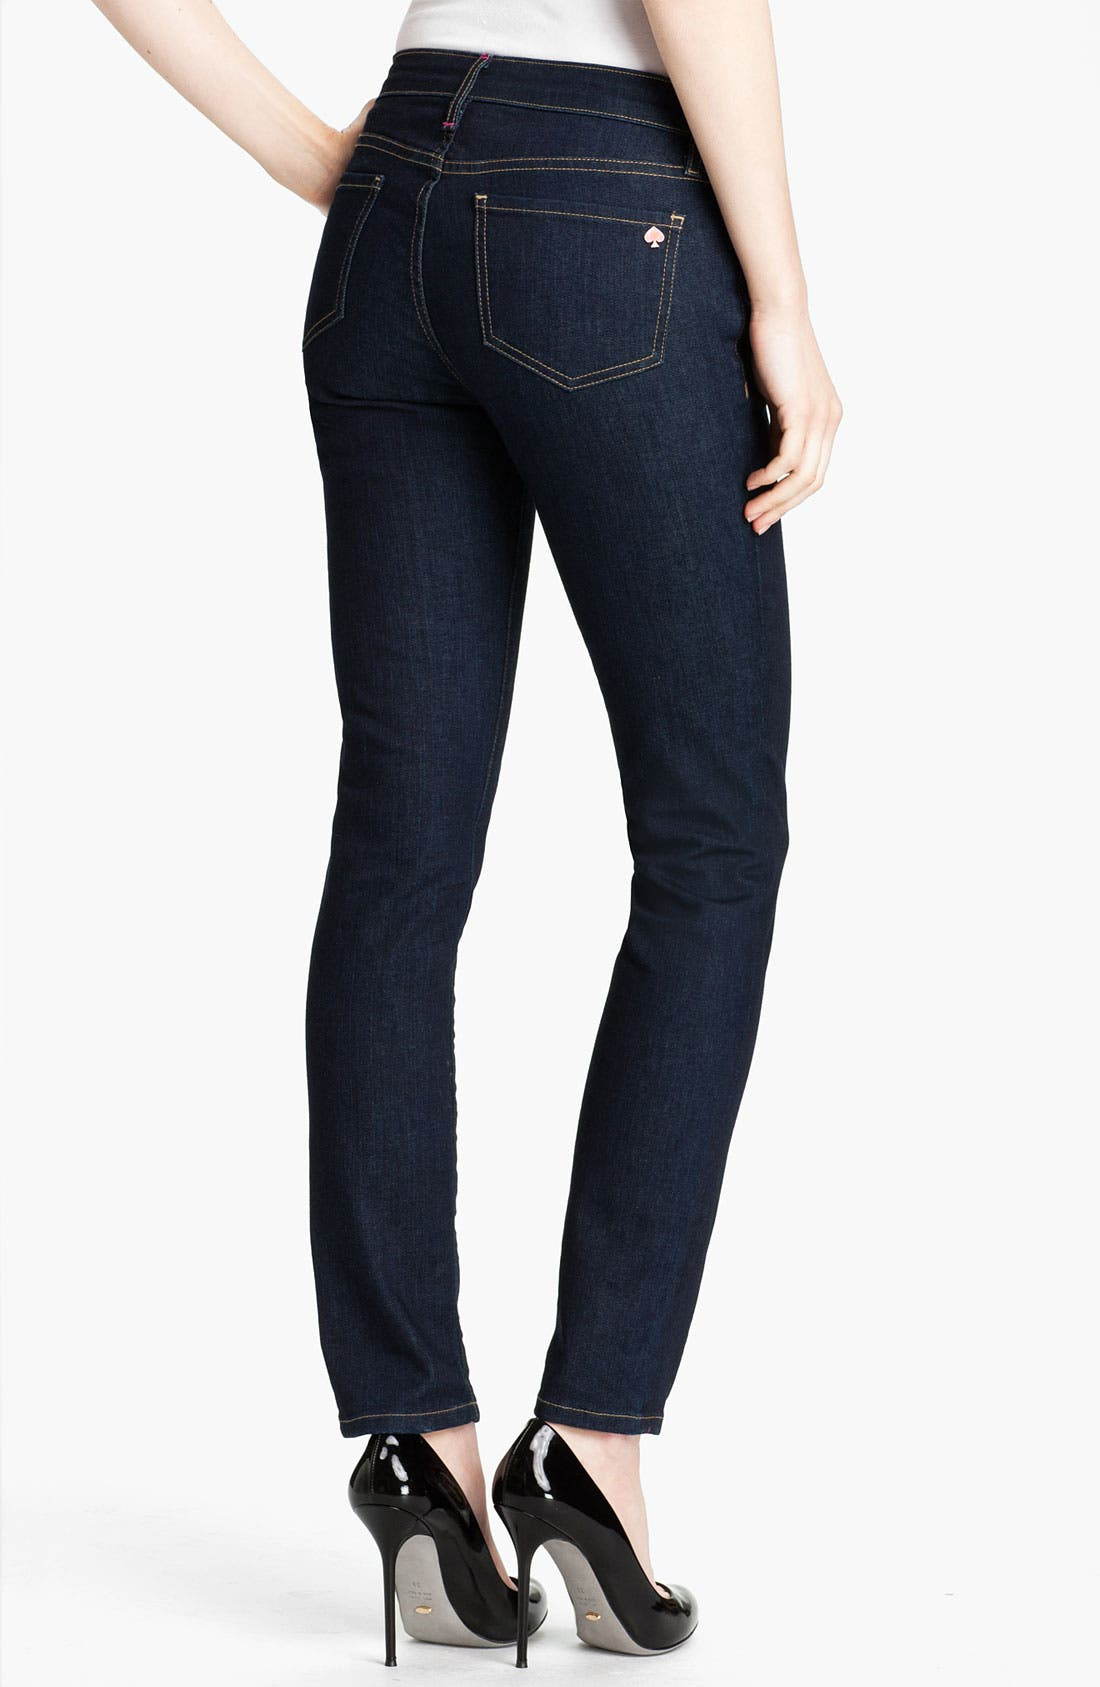 Alternate Image 2  - kate spade new york 'broome street' skinny jeans (Indigo Wash) (Online Only)